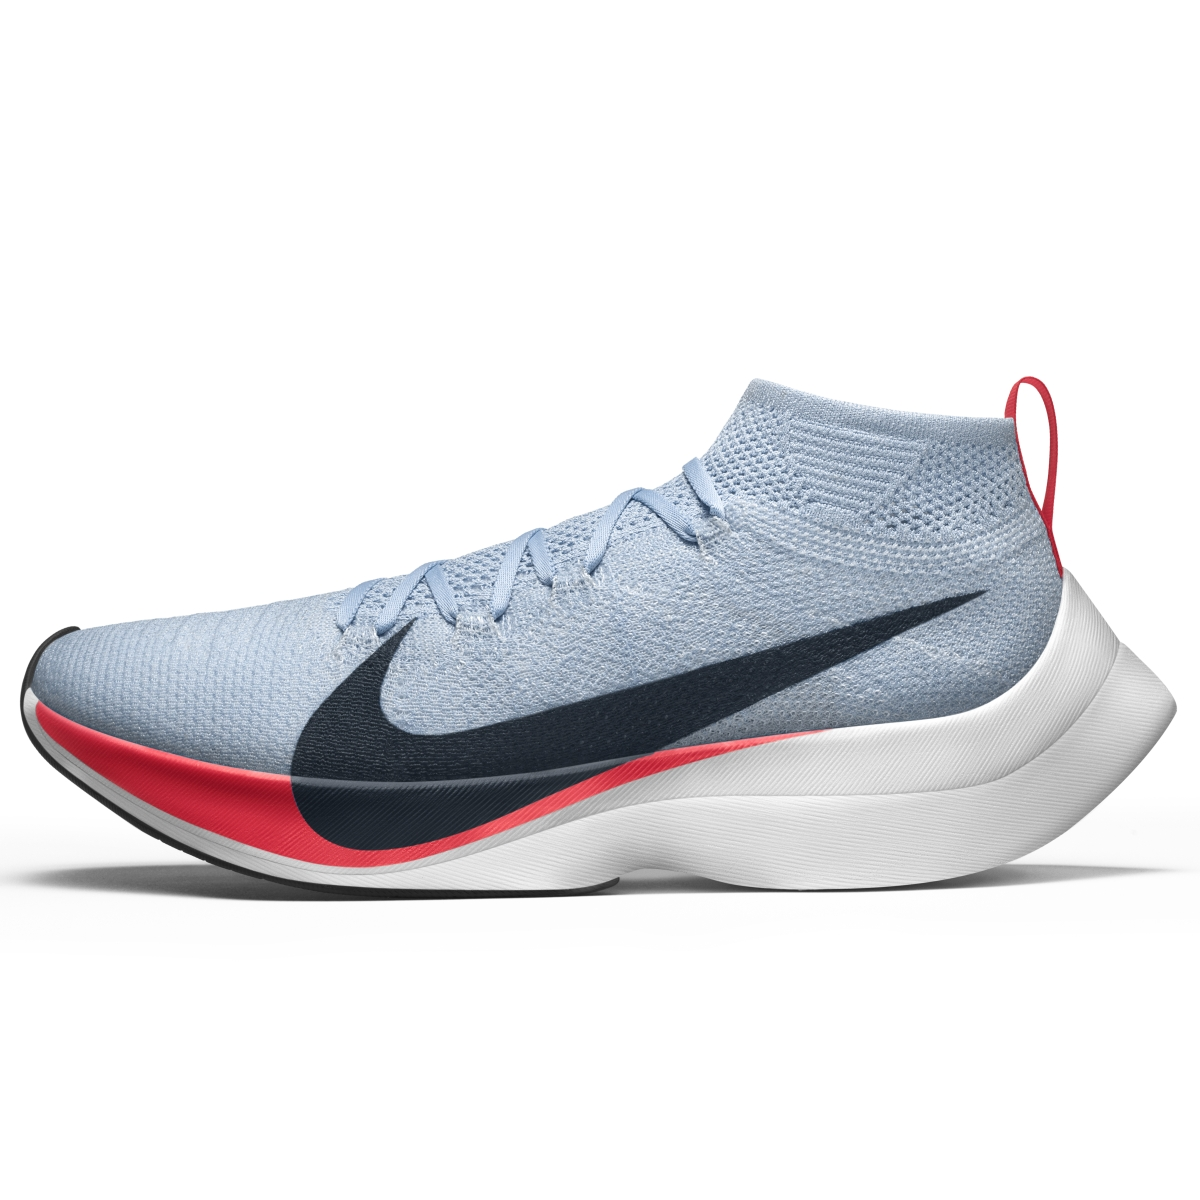 1a8cb335d409 Nike Unveils What It Hopes is the Fastest Shoe in the World - Men s ...